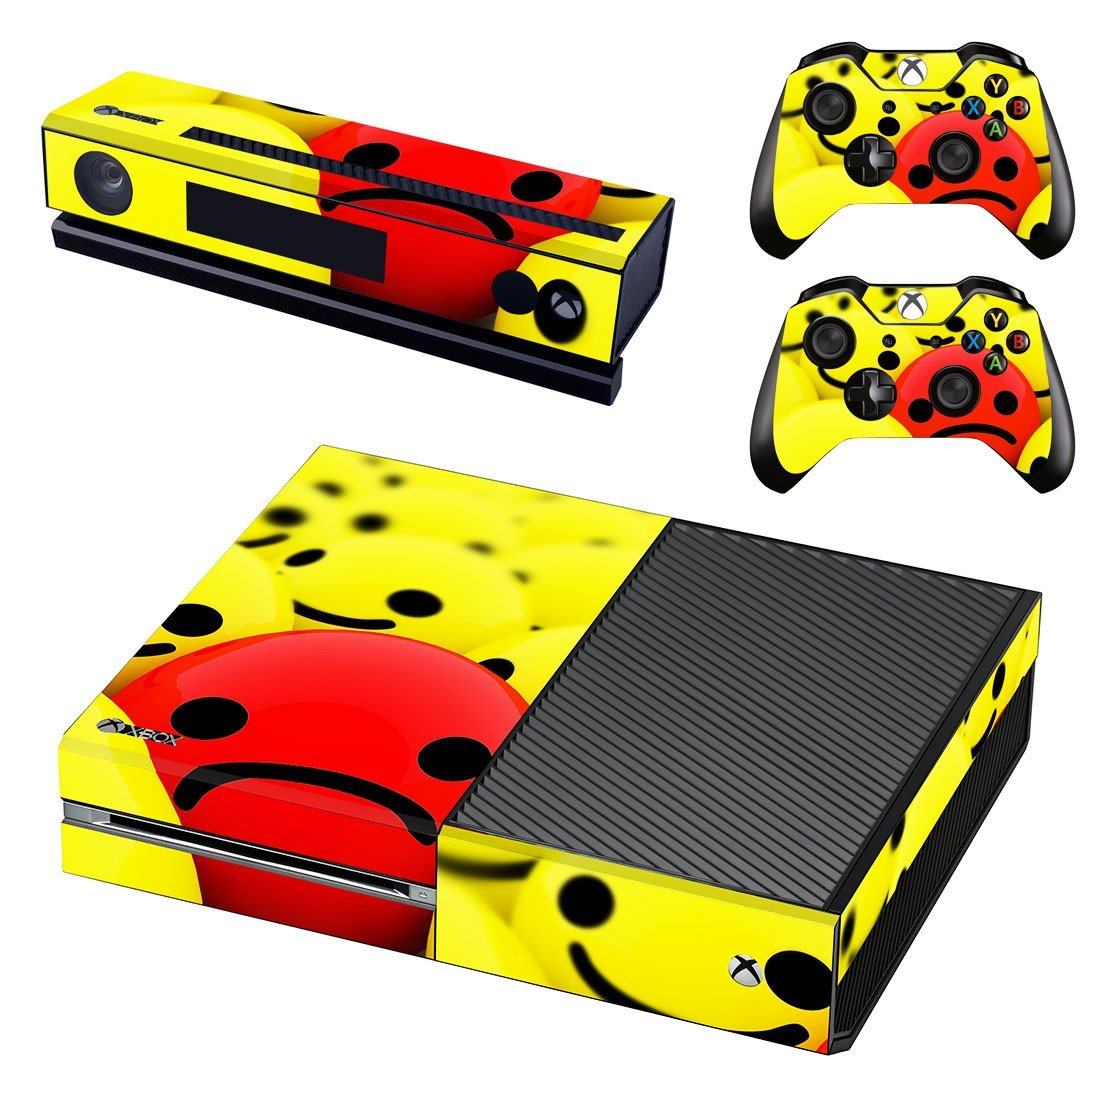 Emoji decal skin sticker for Xbox One console and controllers